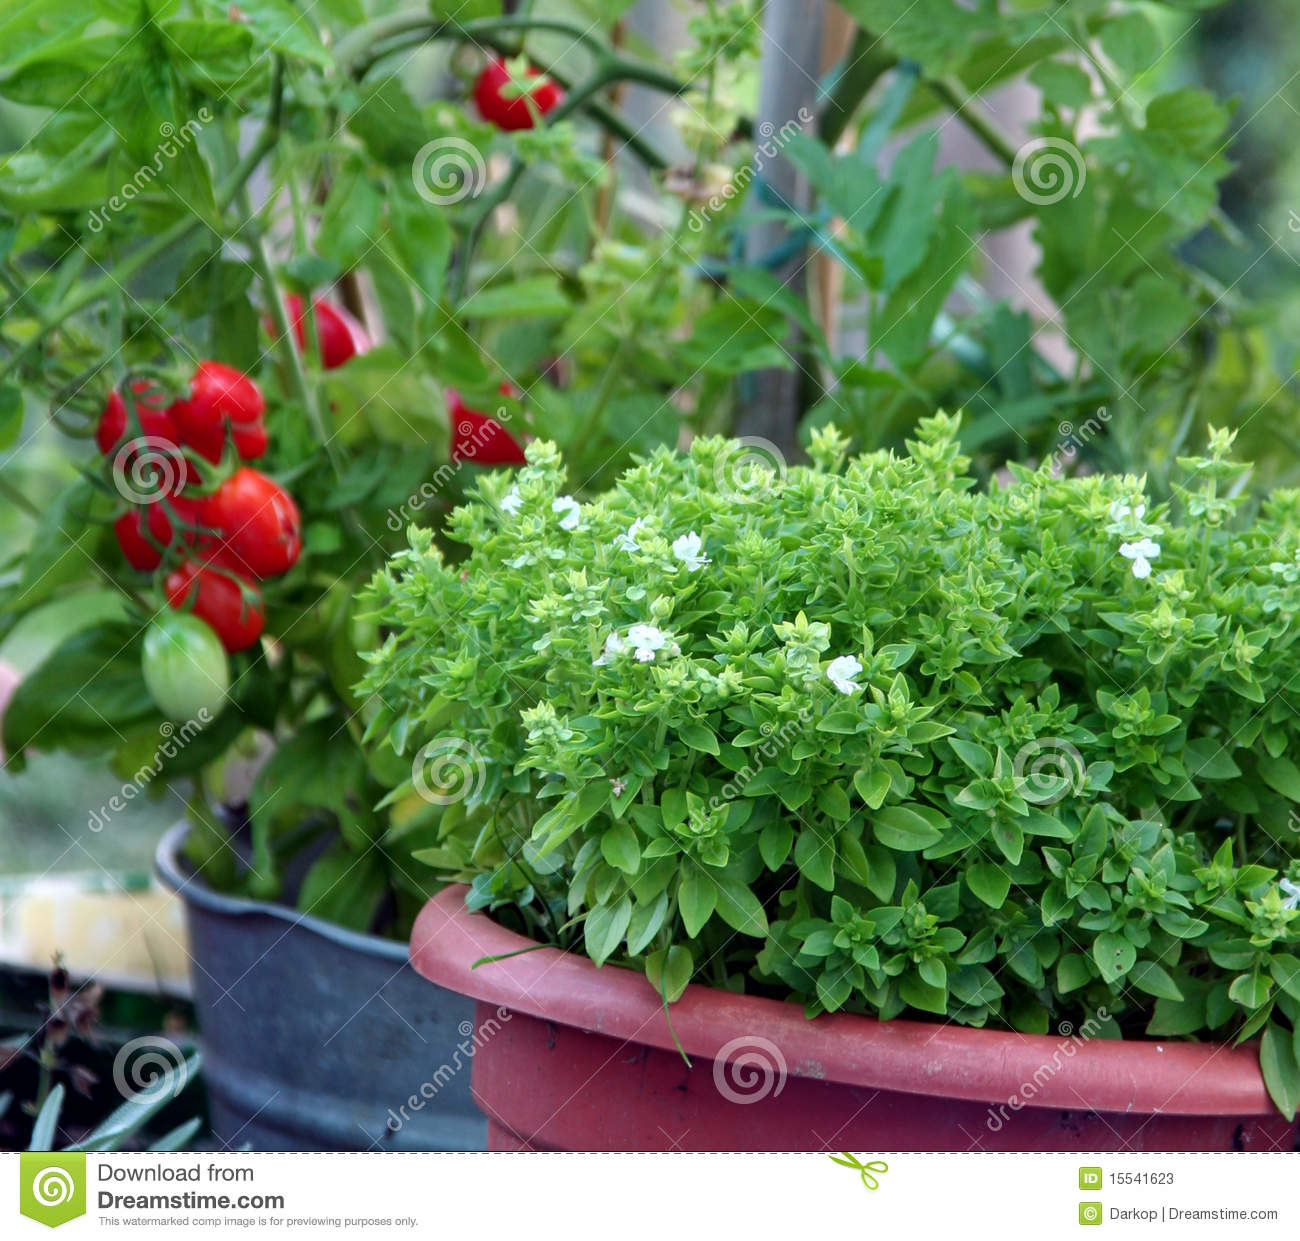 Container gardening basil and tomato